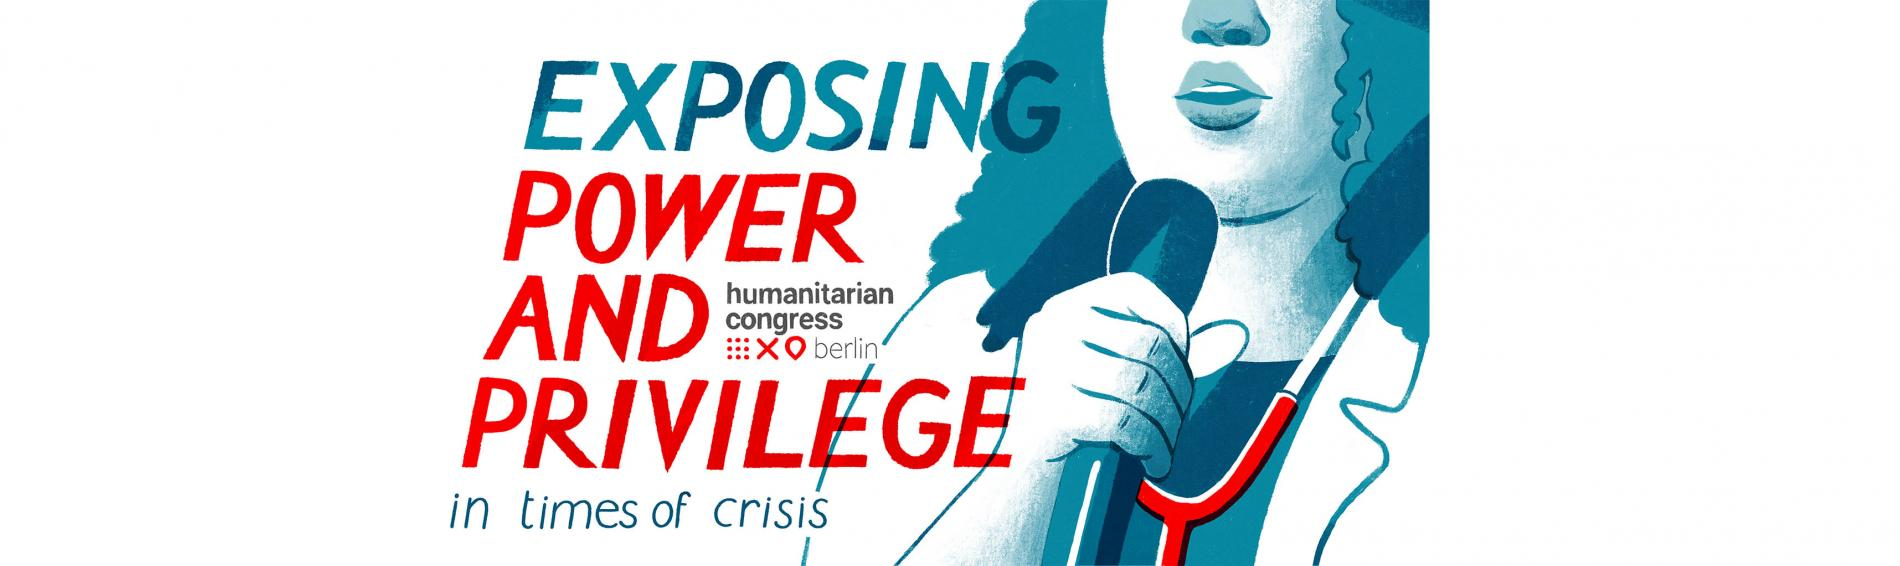 Humanitarian Congress online from Oct 26-30